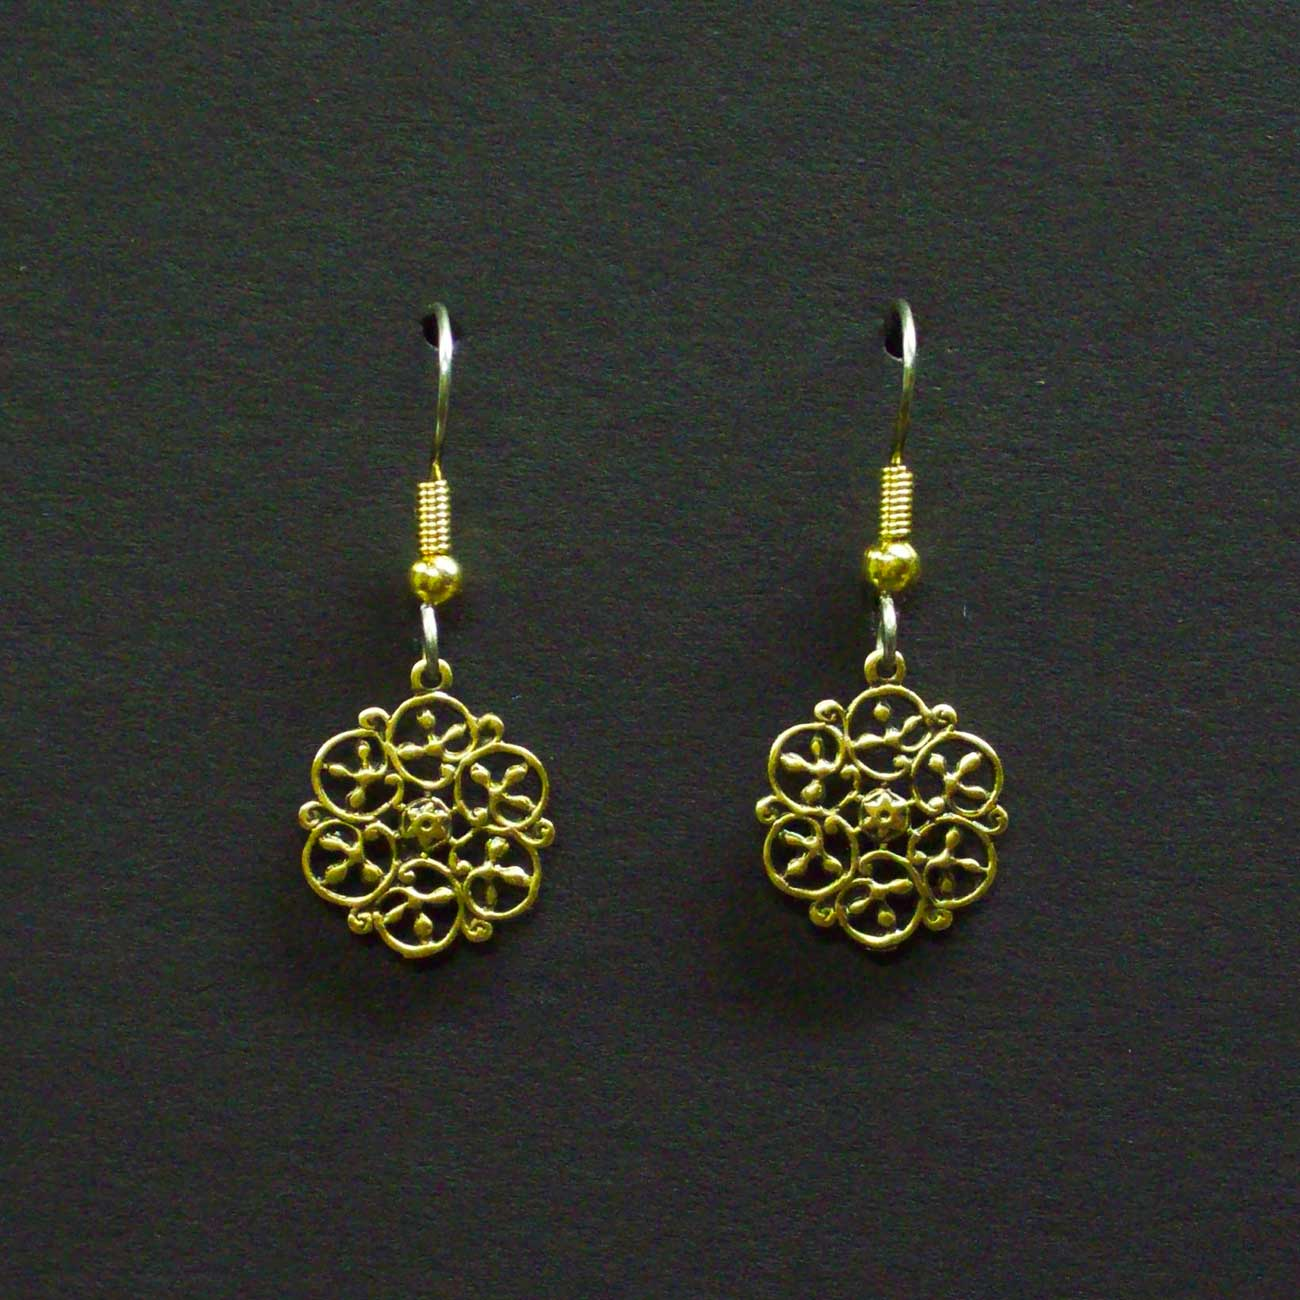 Small Celtic Filigree Earrings